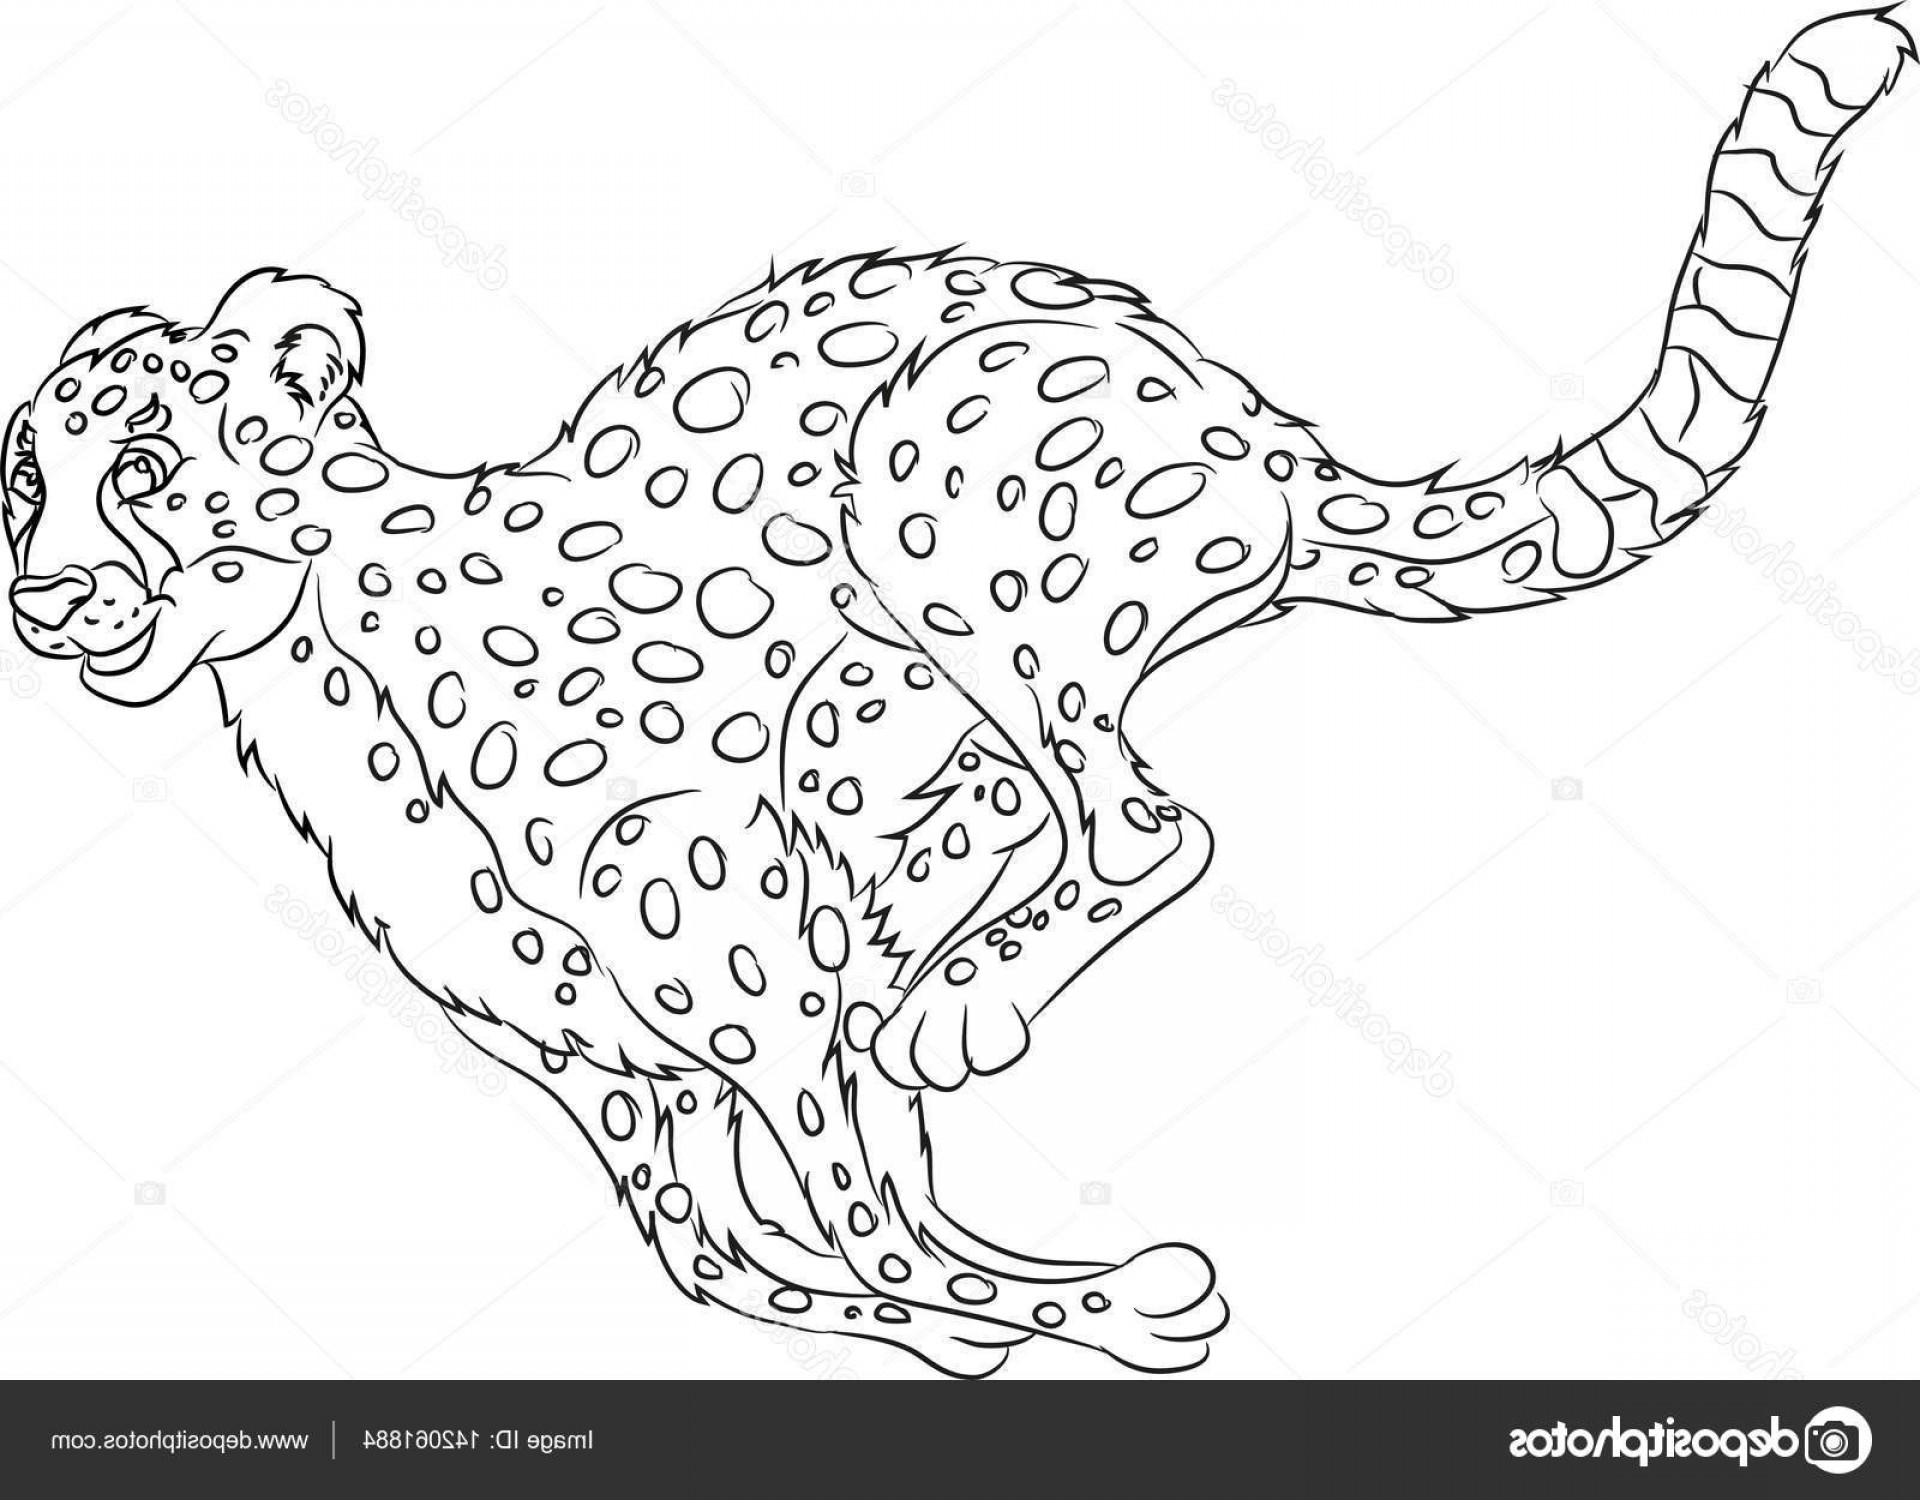 Nala Vector: Black Cat Coloring Pages Lovely Free Printable Domestic Cat Coloring Page Quotnalaquot Available For